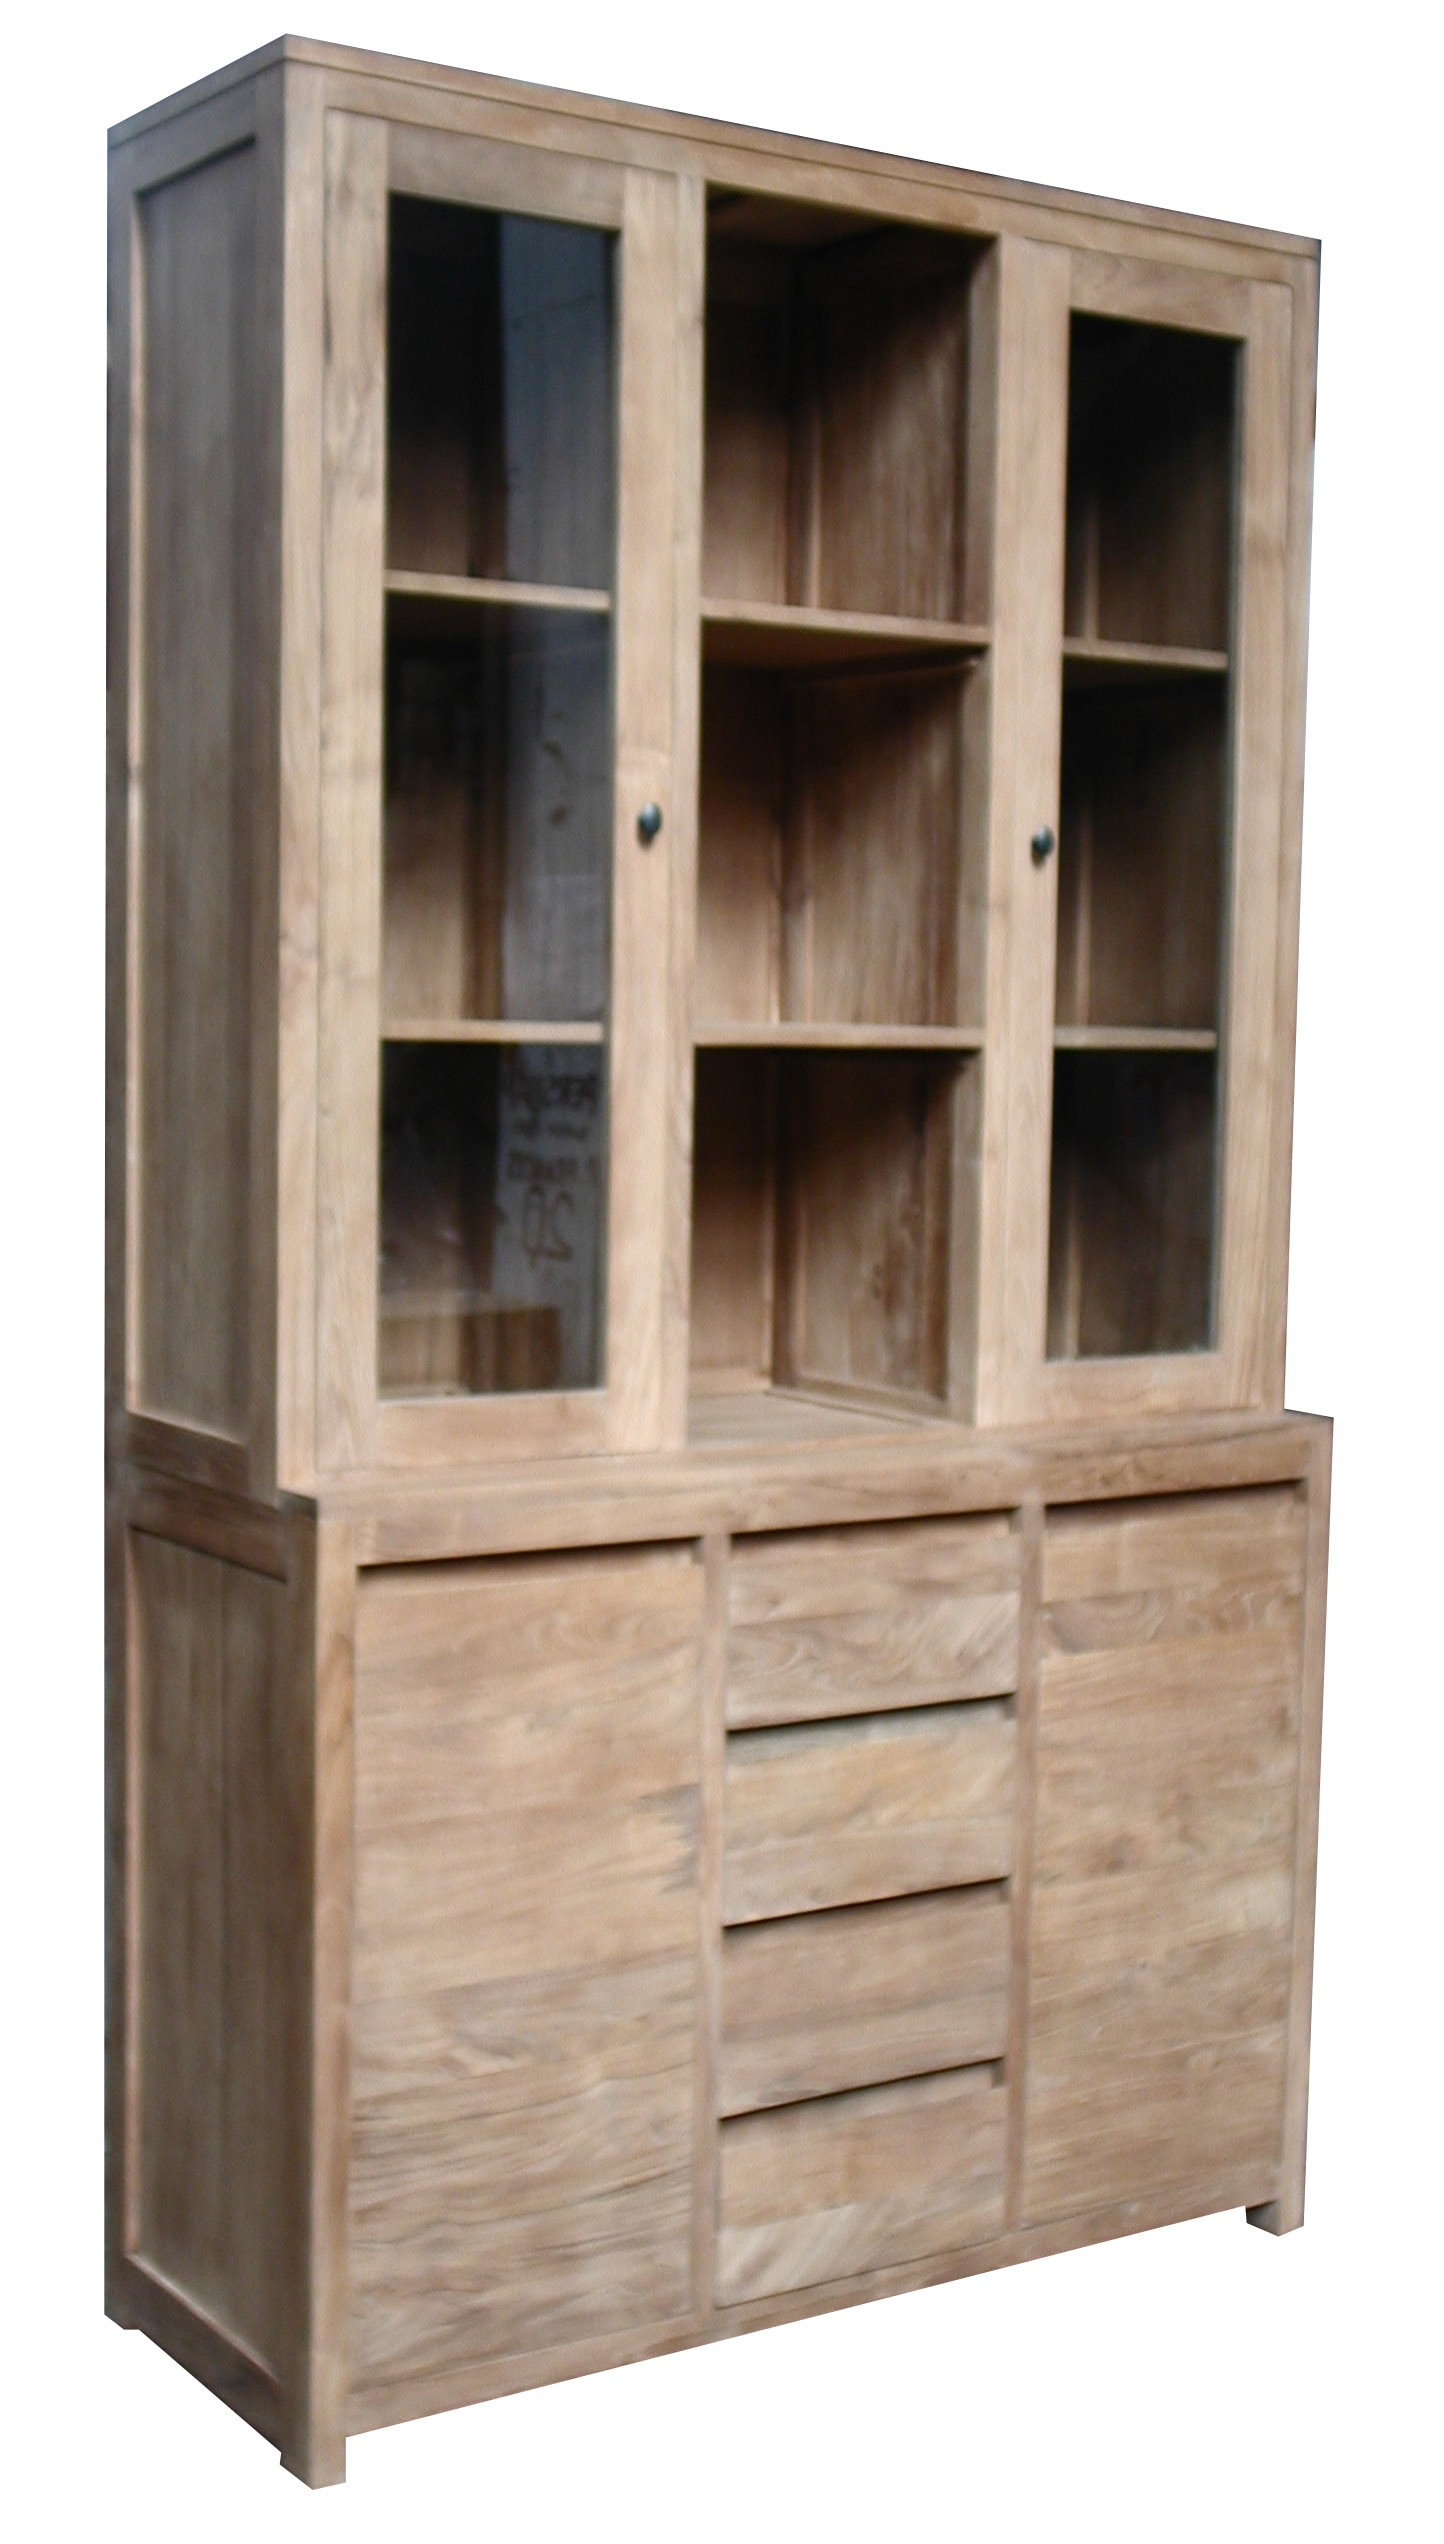 bibliotheque vitrine la maison du teck meuble et d co en teck part 2. Black Bedroom Furniture Sets. Home Design Ideas